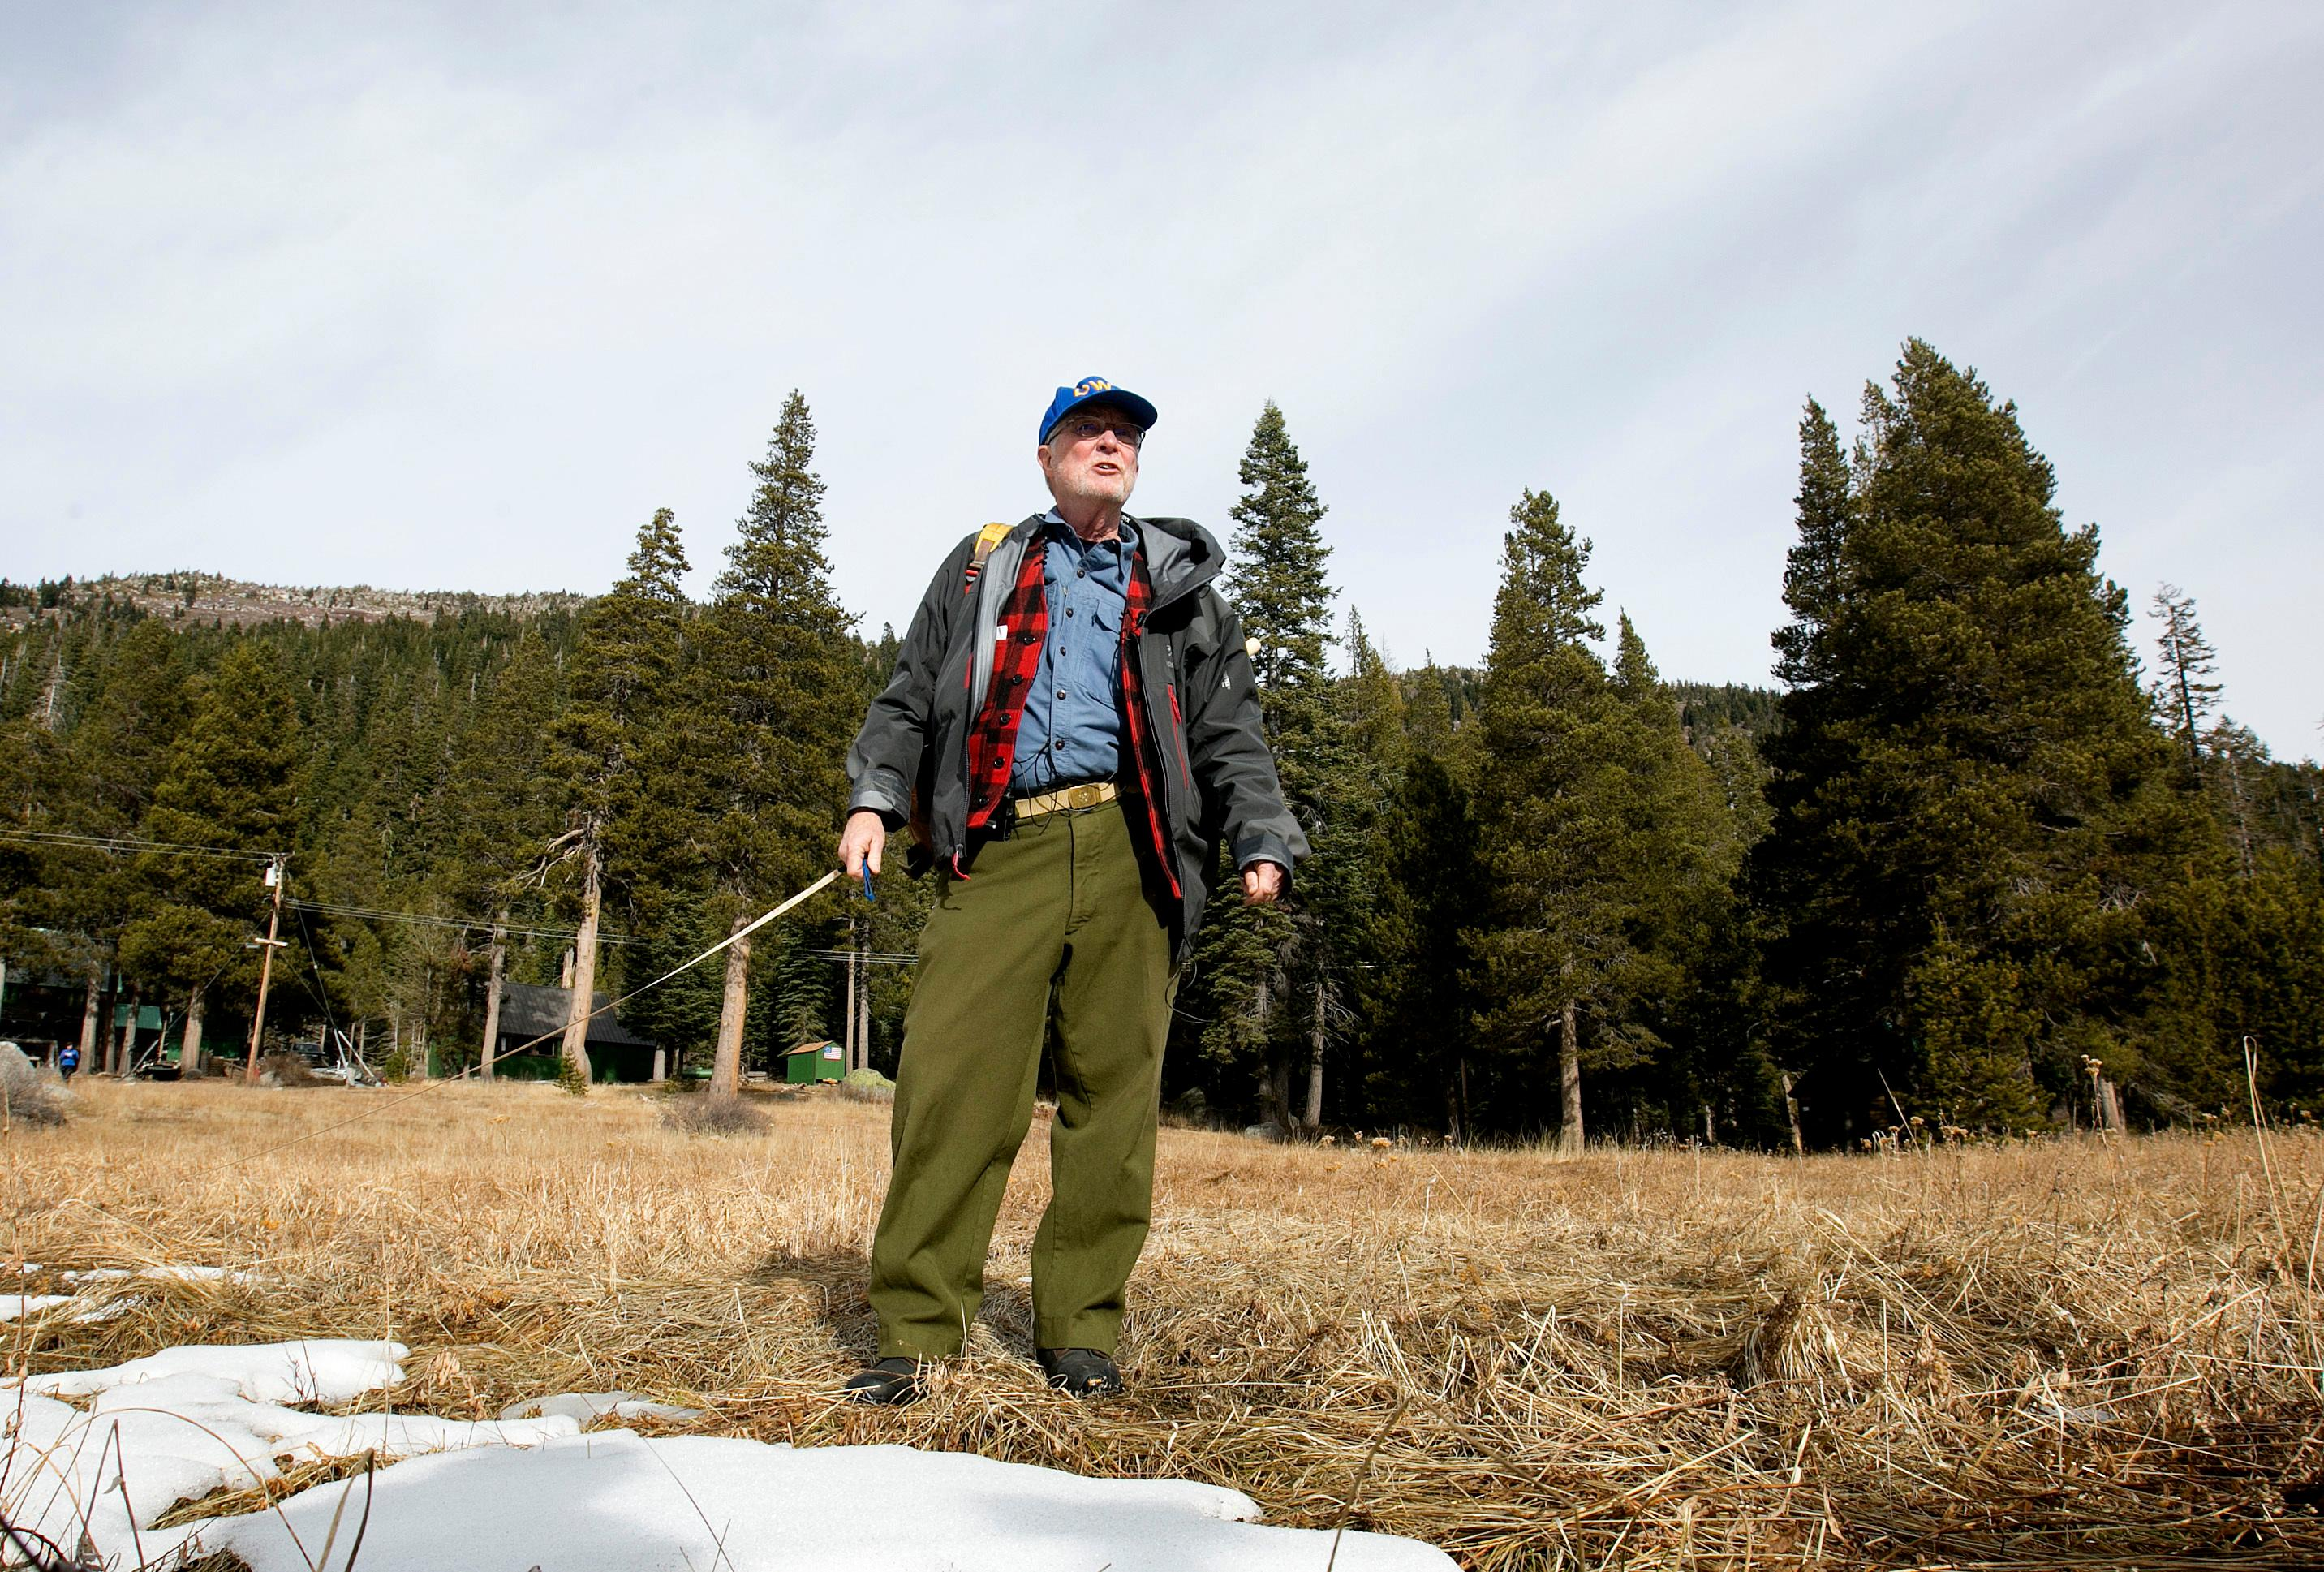 Frank Gehrke, chief of the California Cooperative Snow Surveys Program for the Department of Water Resources, looks over a nearly snow barren meadow while conducting the first snow survey of the season at the Phillips Station snow course, Wednesday, Jan. 3, 2018, near Echo Summit, Calif. (AP Photo/Rich Pedroncelli)